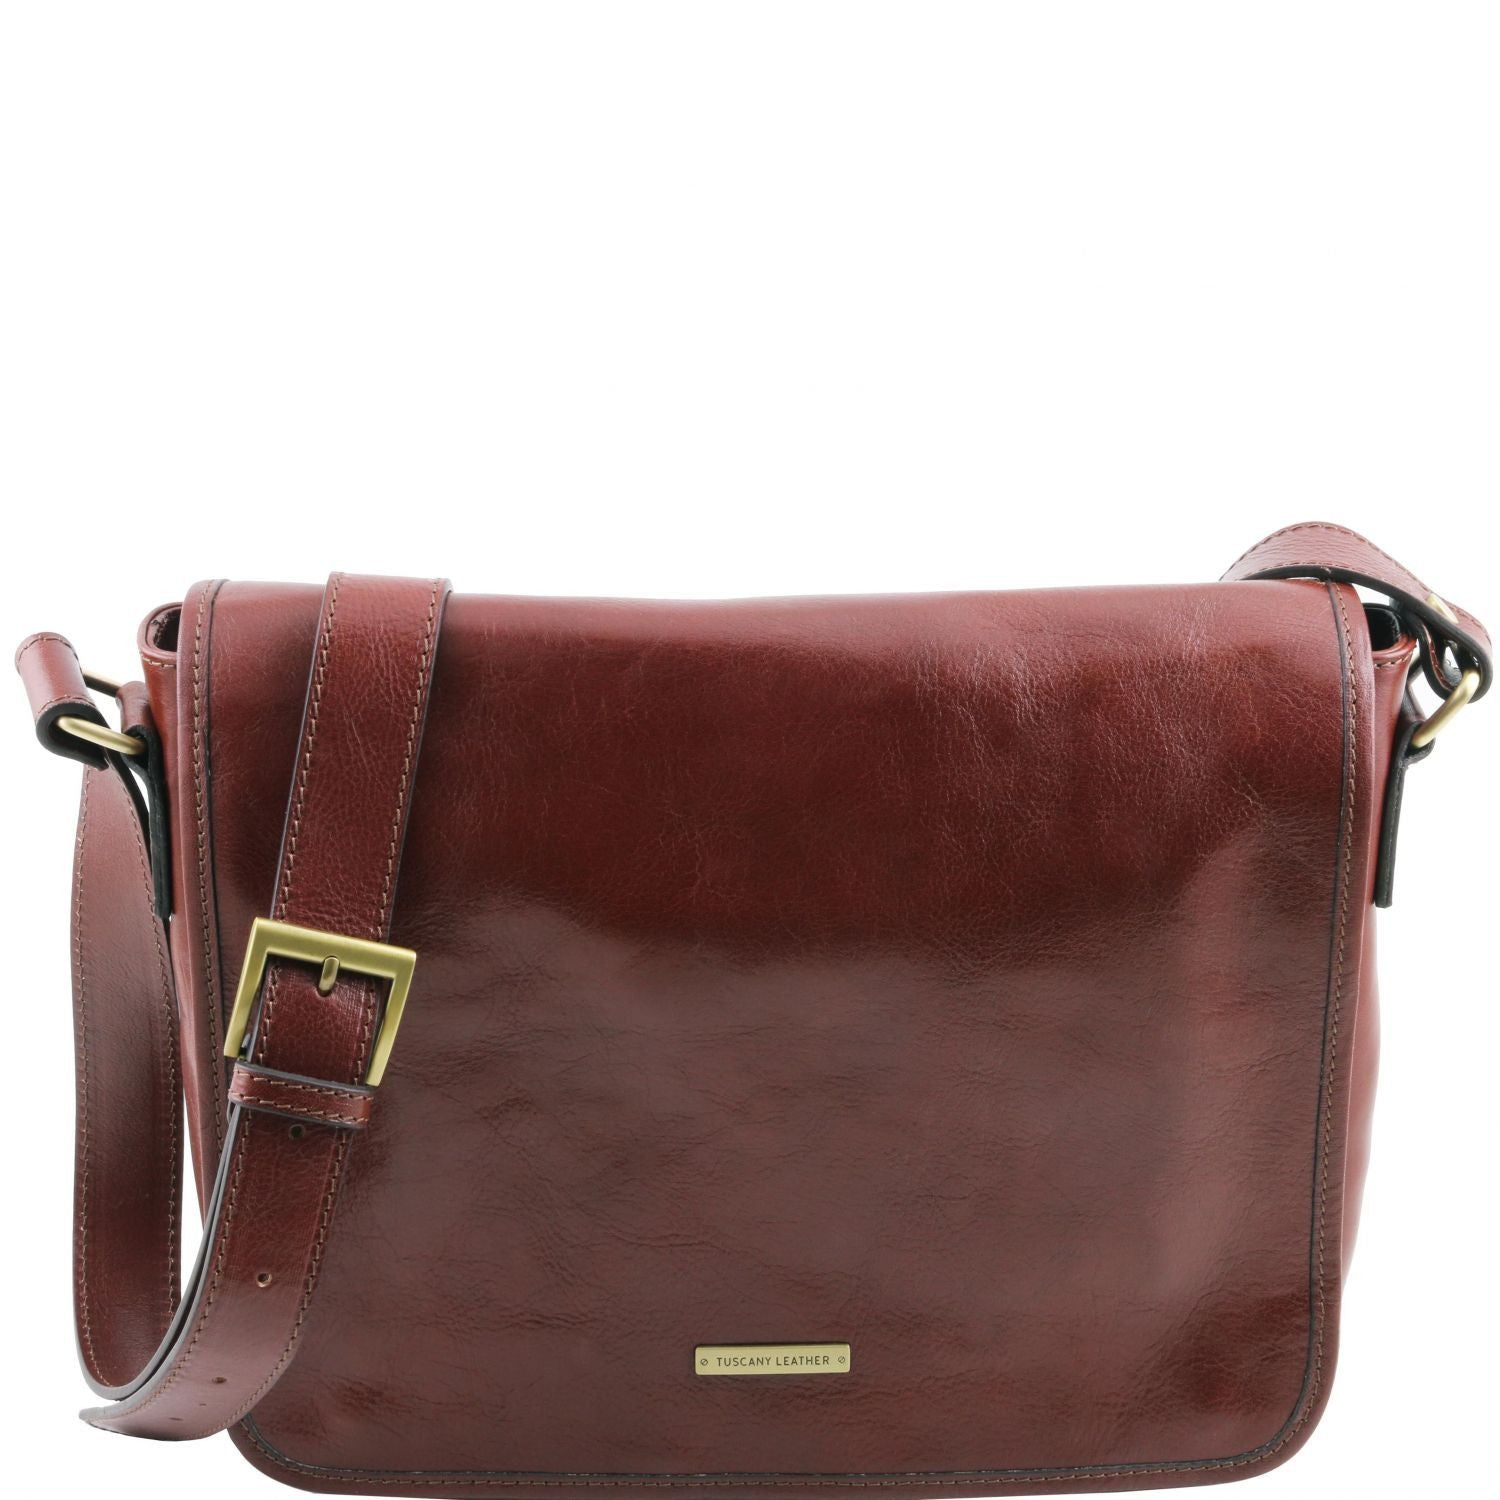 b4a9c2da55 TL Messenger leather shoulder bag - Medium size – Florence Leather